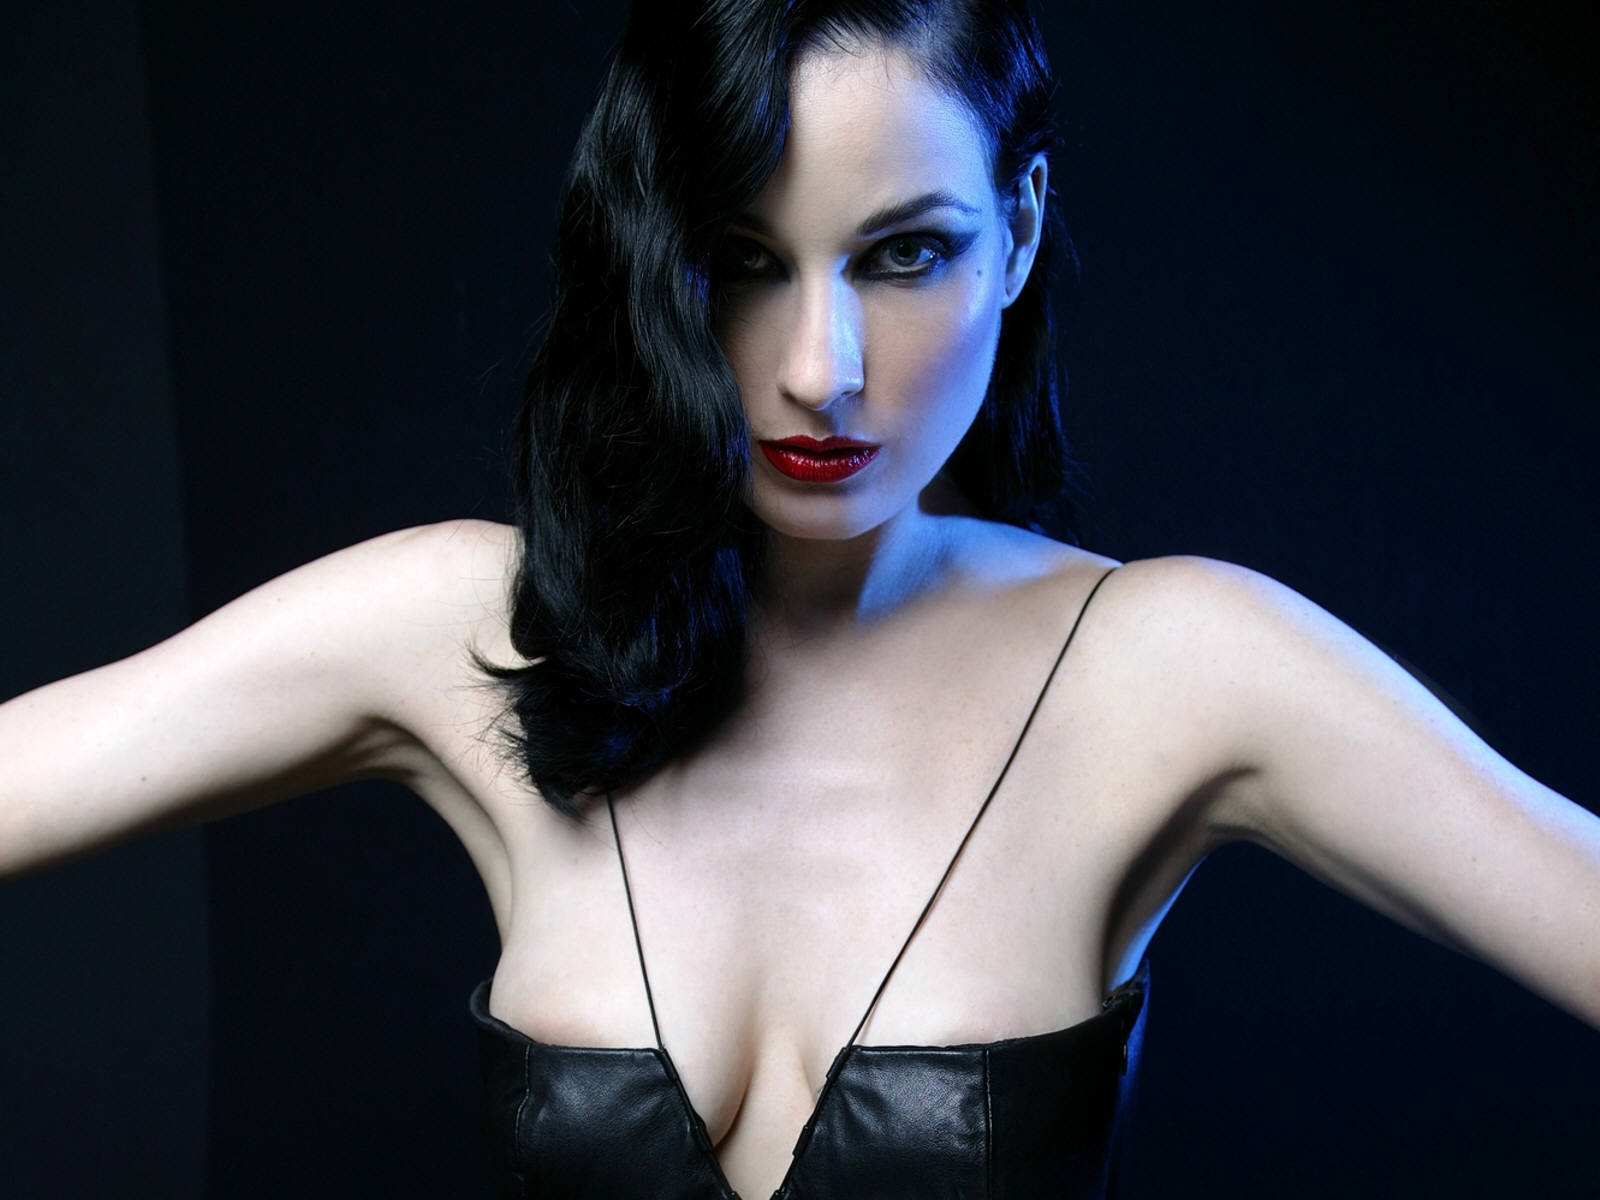 Dita Von Teese images Dita HD wallpaper and background photos (1552726 ... Dita